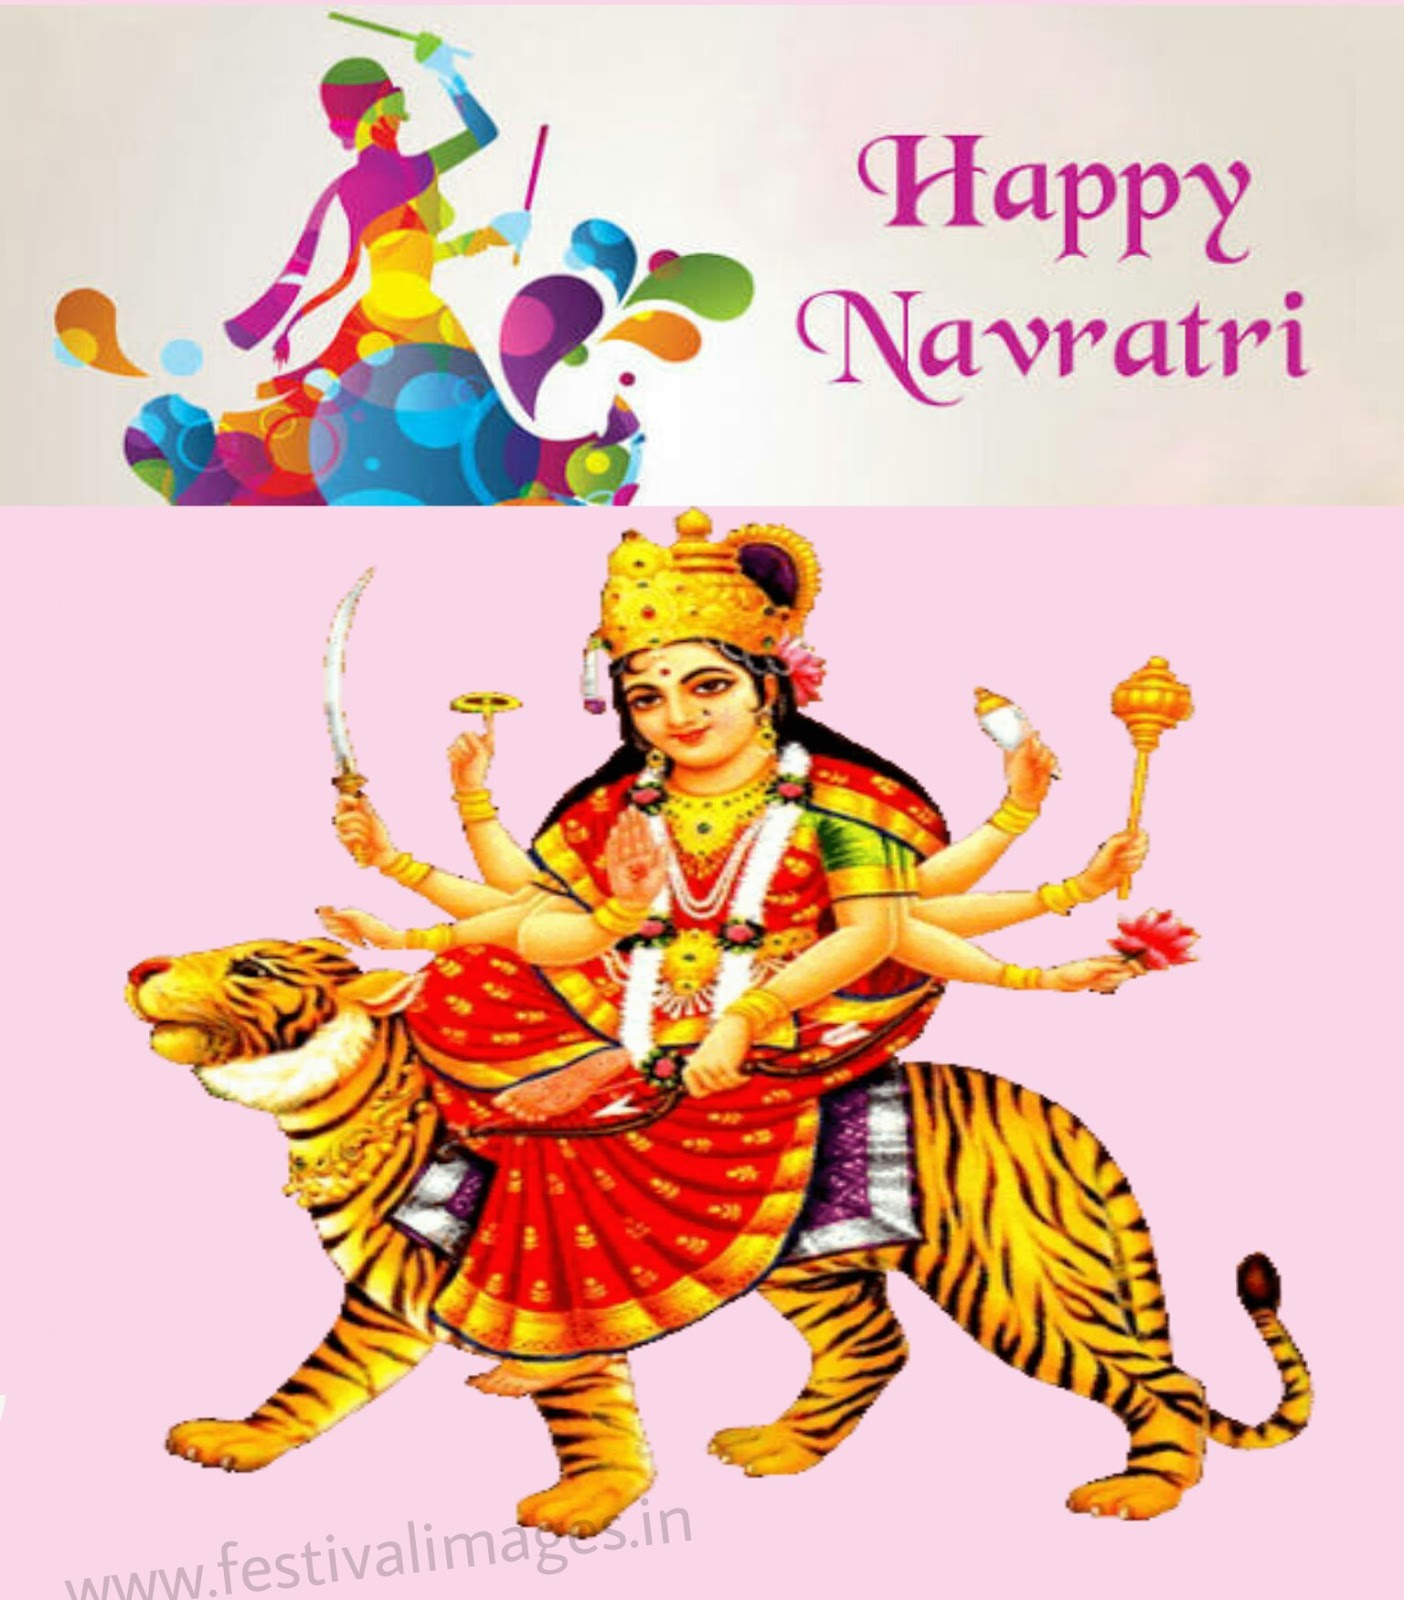 Festival images happy navratri 2017 with best wishes wallpaper kristyandbryce Choice Image